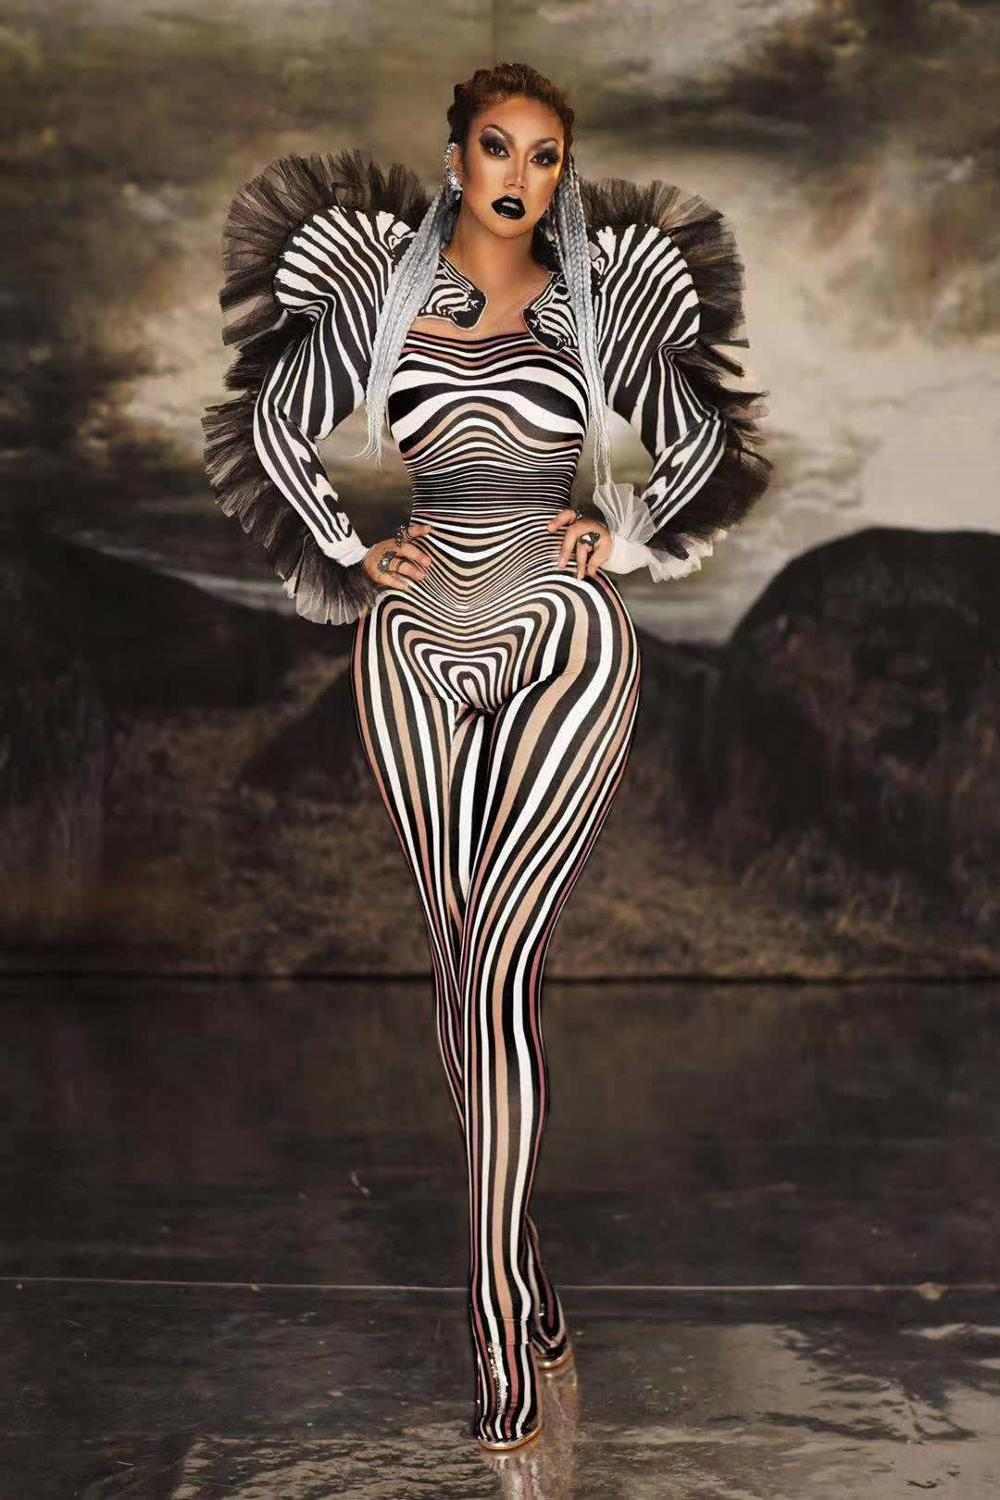 New Style Zebra Pattern Jumpsuit Women <font><b>Singer</b></font> <font><b>Sexy</b></font> <font><b>Stage</b></font> Outfit Bar <font><b>DS</b></font> Dance Cosplay Bodysuit <font><b>Costume</b></font> Prom Clothes image